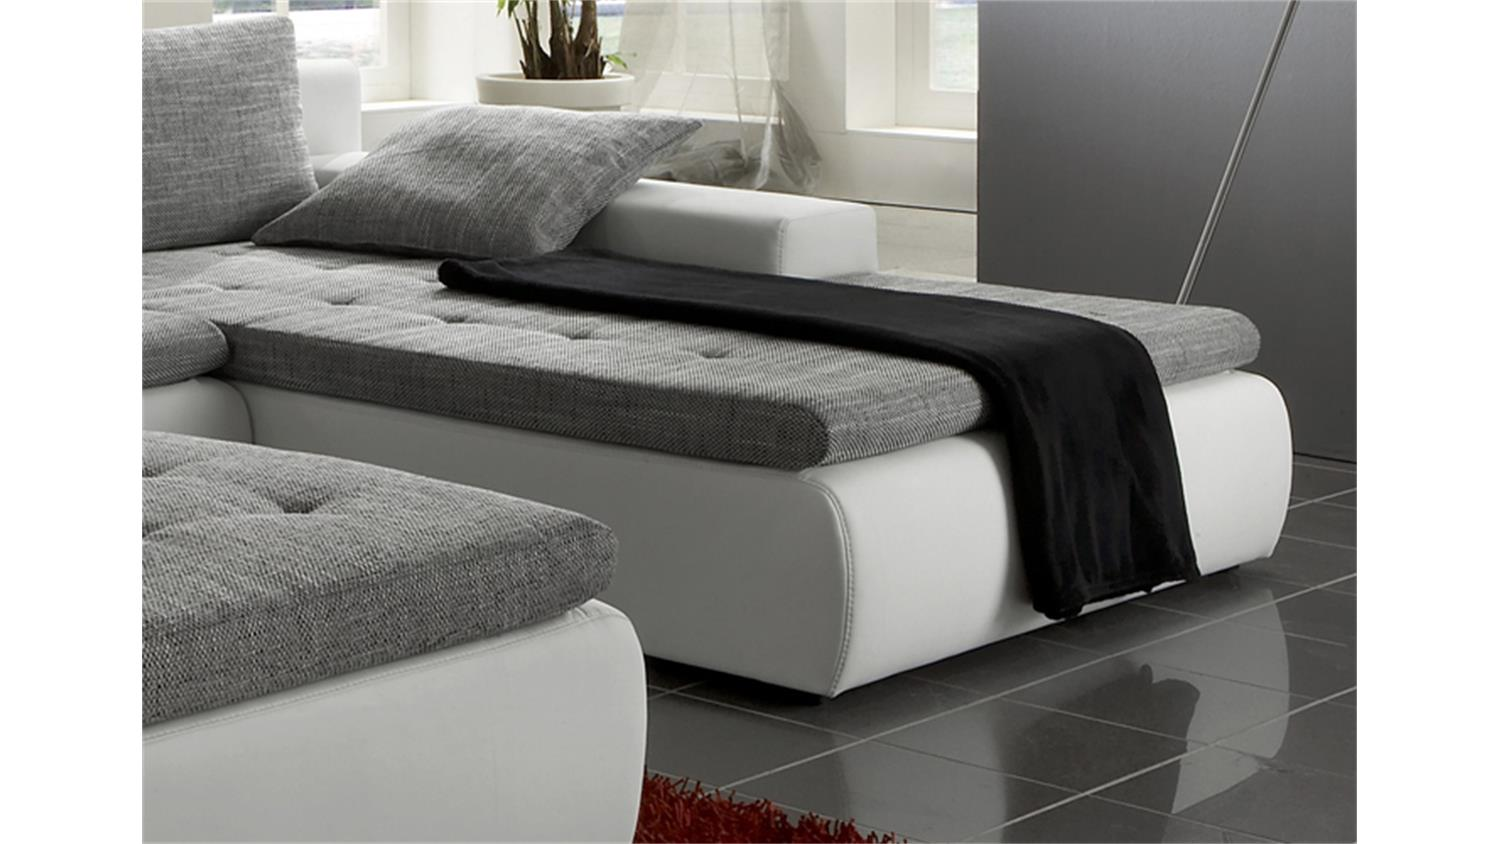 ecksofa alfa mit hocker in wei und grau mit g stebett. Black Bedroom Furniture Sets. Home Design Ideas